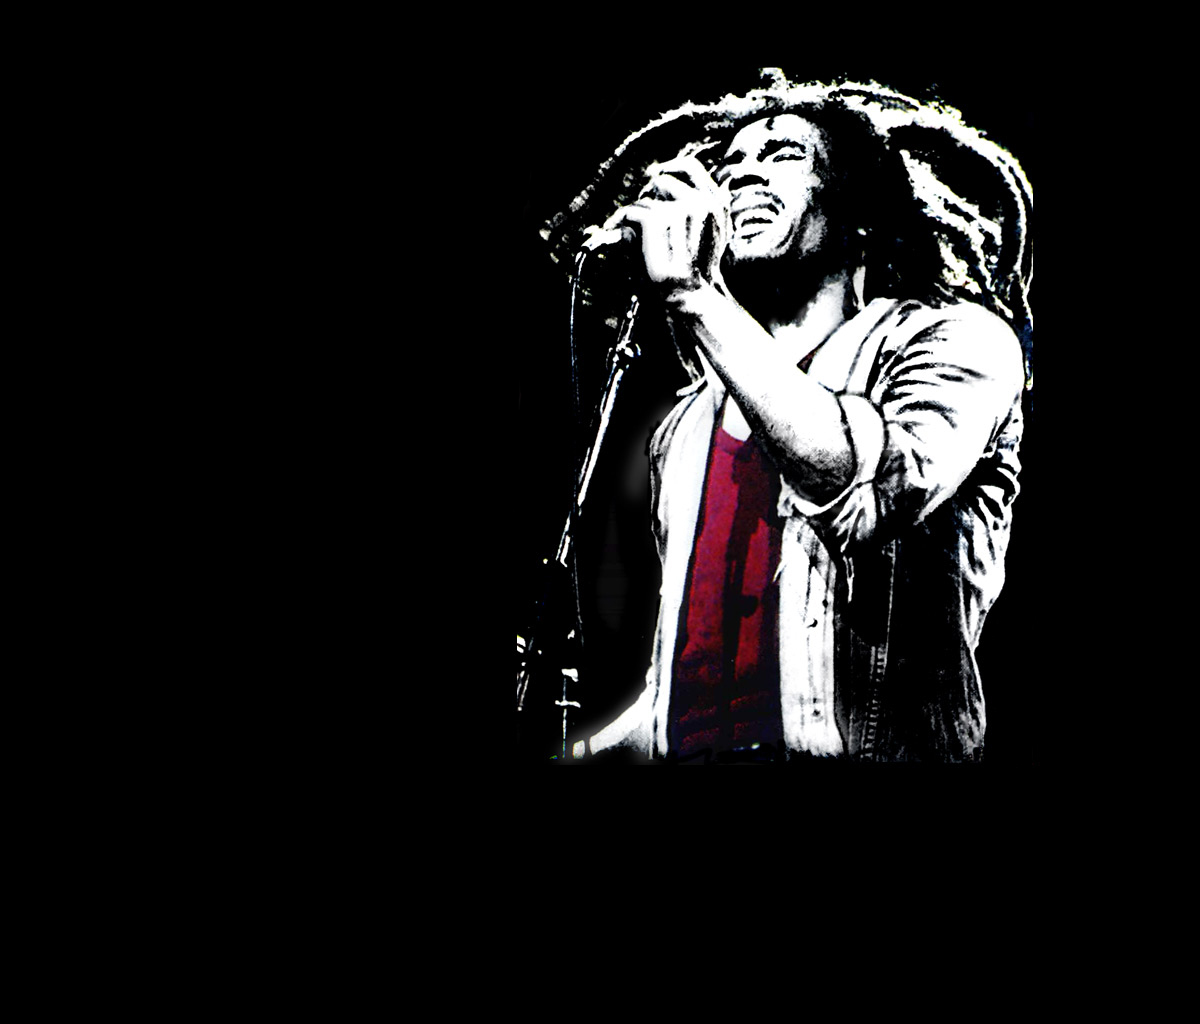 Bob Marley wallpaper - 1200x1024